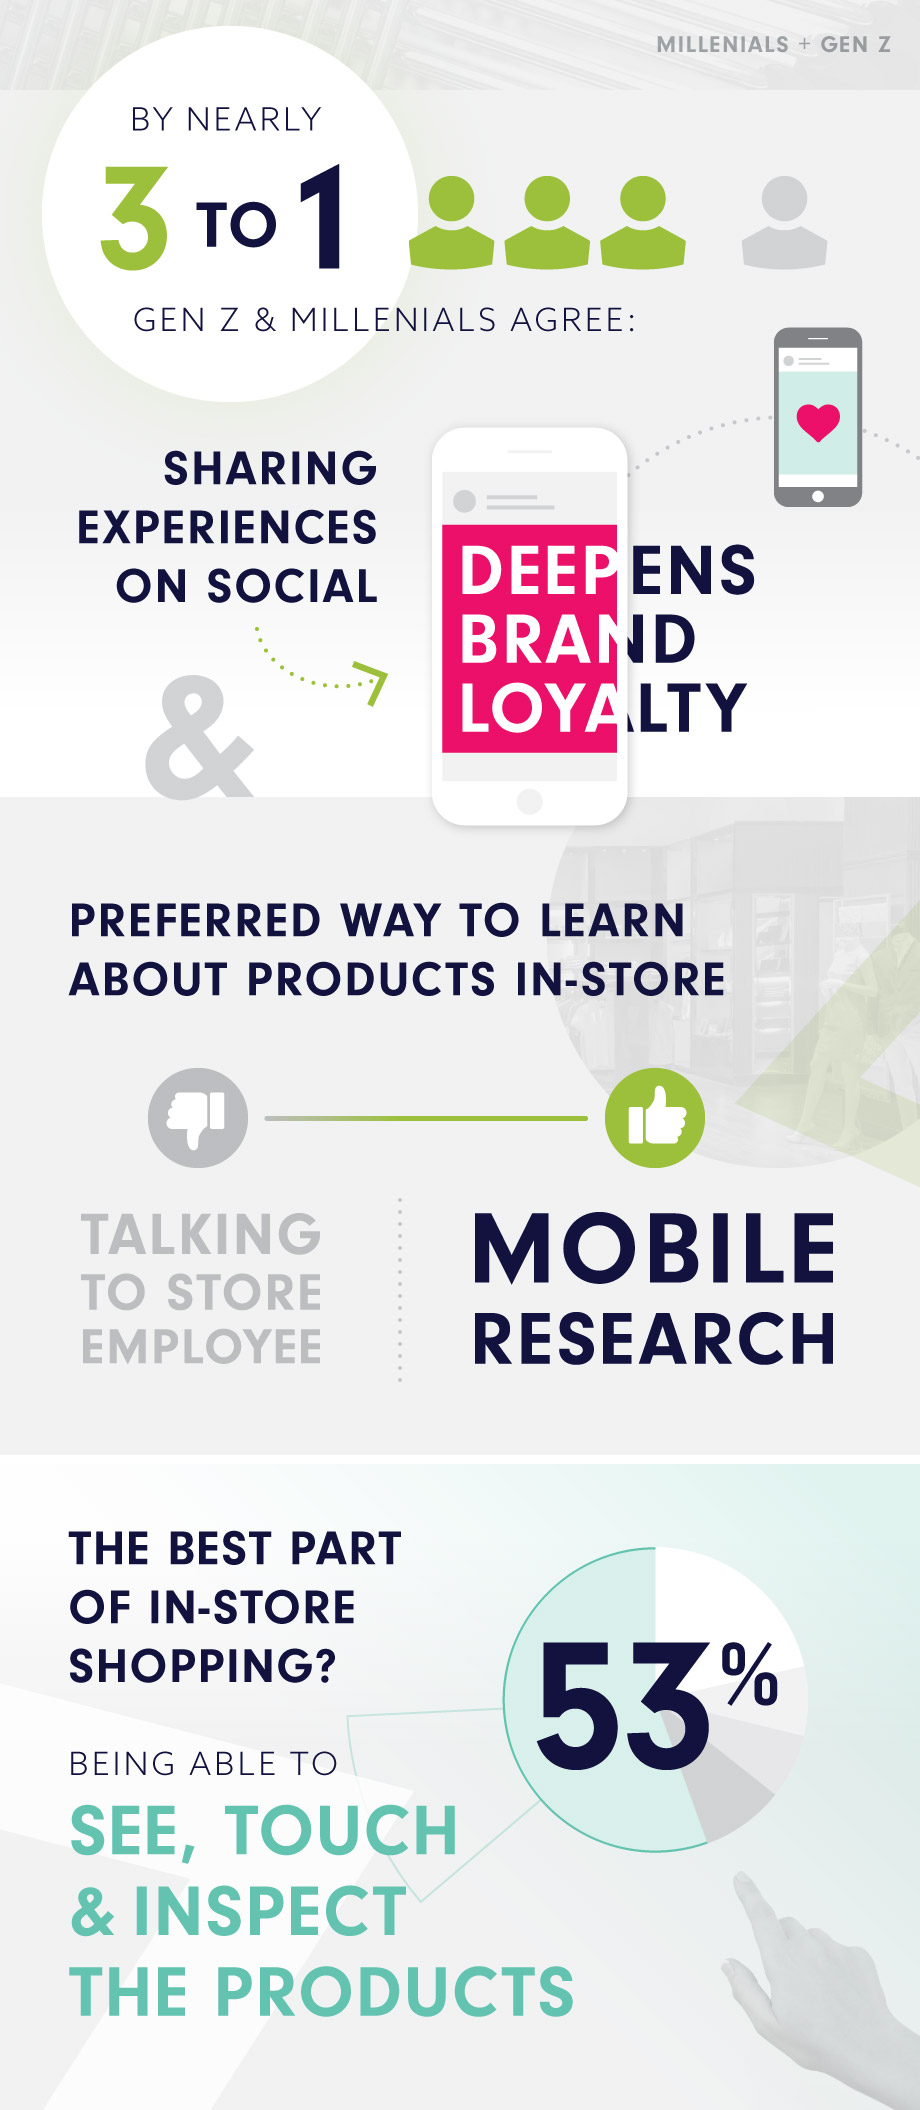 By nearly 3-to-1, Millennials and Gen Z agree that sharing experiences on social deepens brands loyalty, and for learning about products in store, they prefer mobile research over talking to employees. The best part of in-store shopping is being able to see, touch and inspect products.